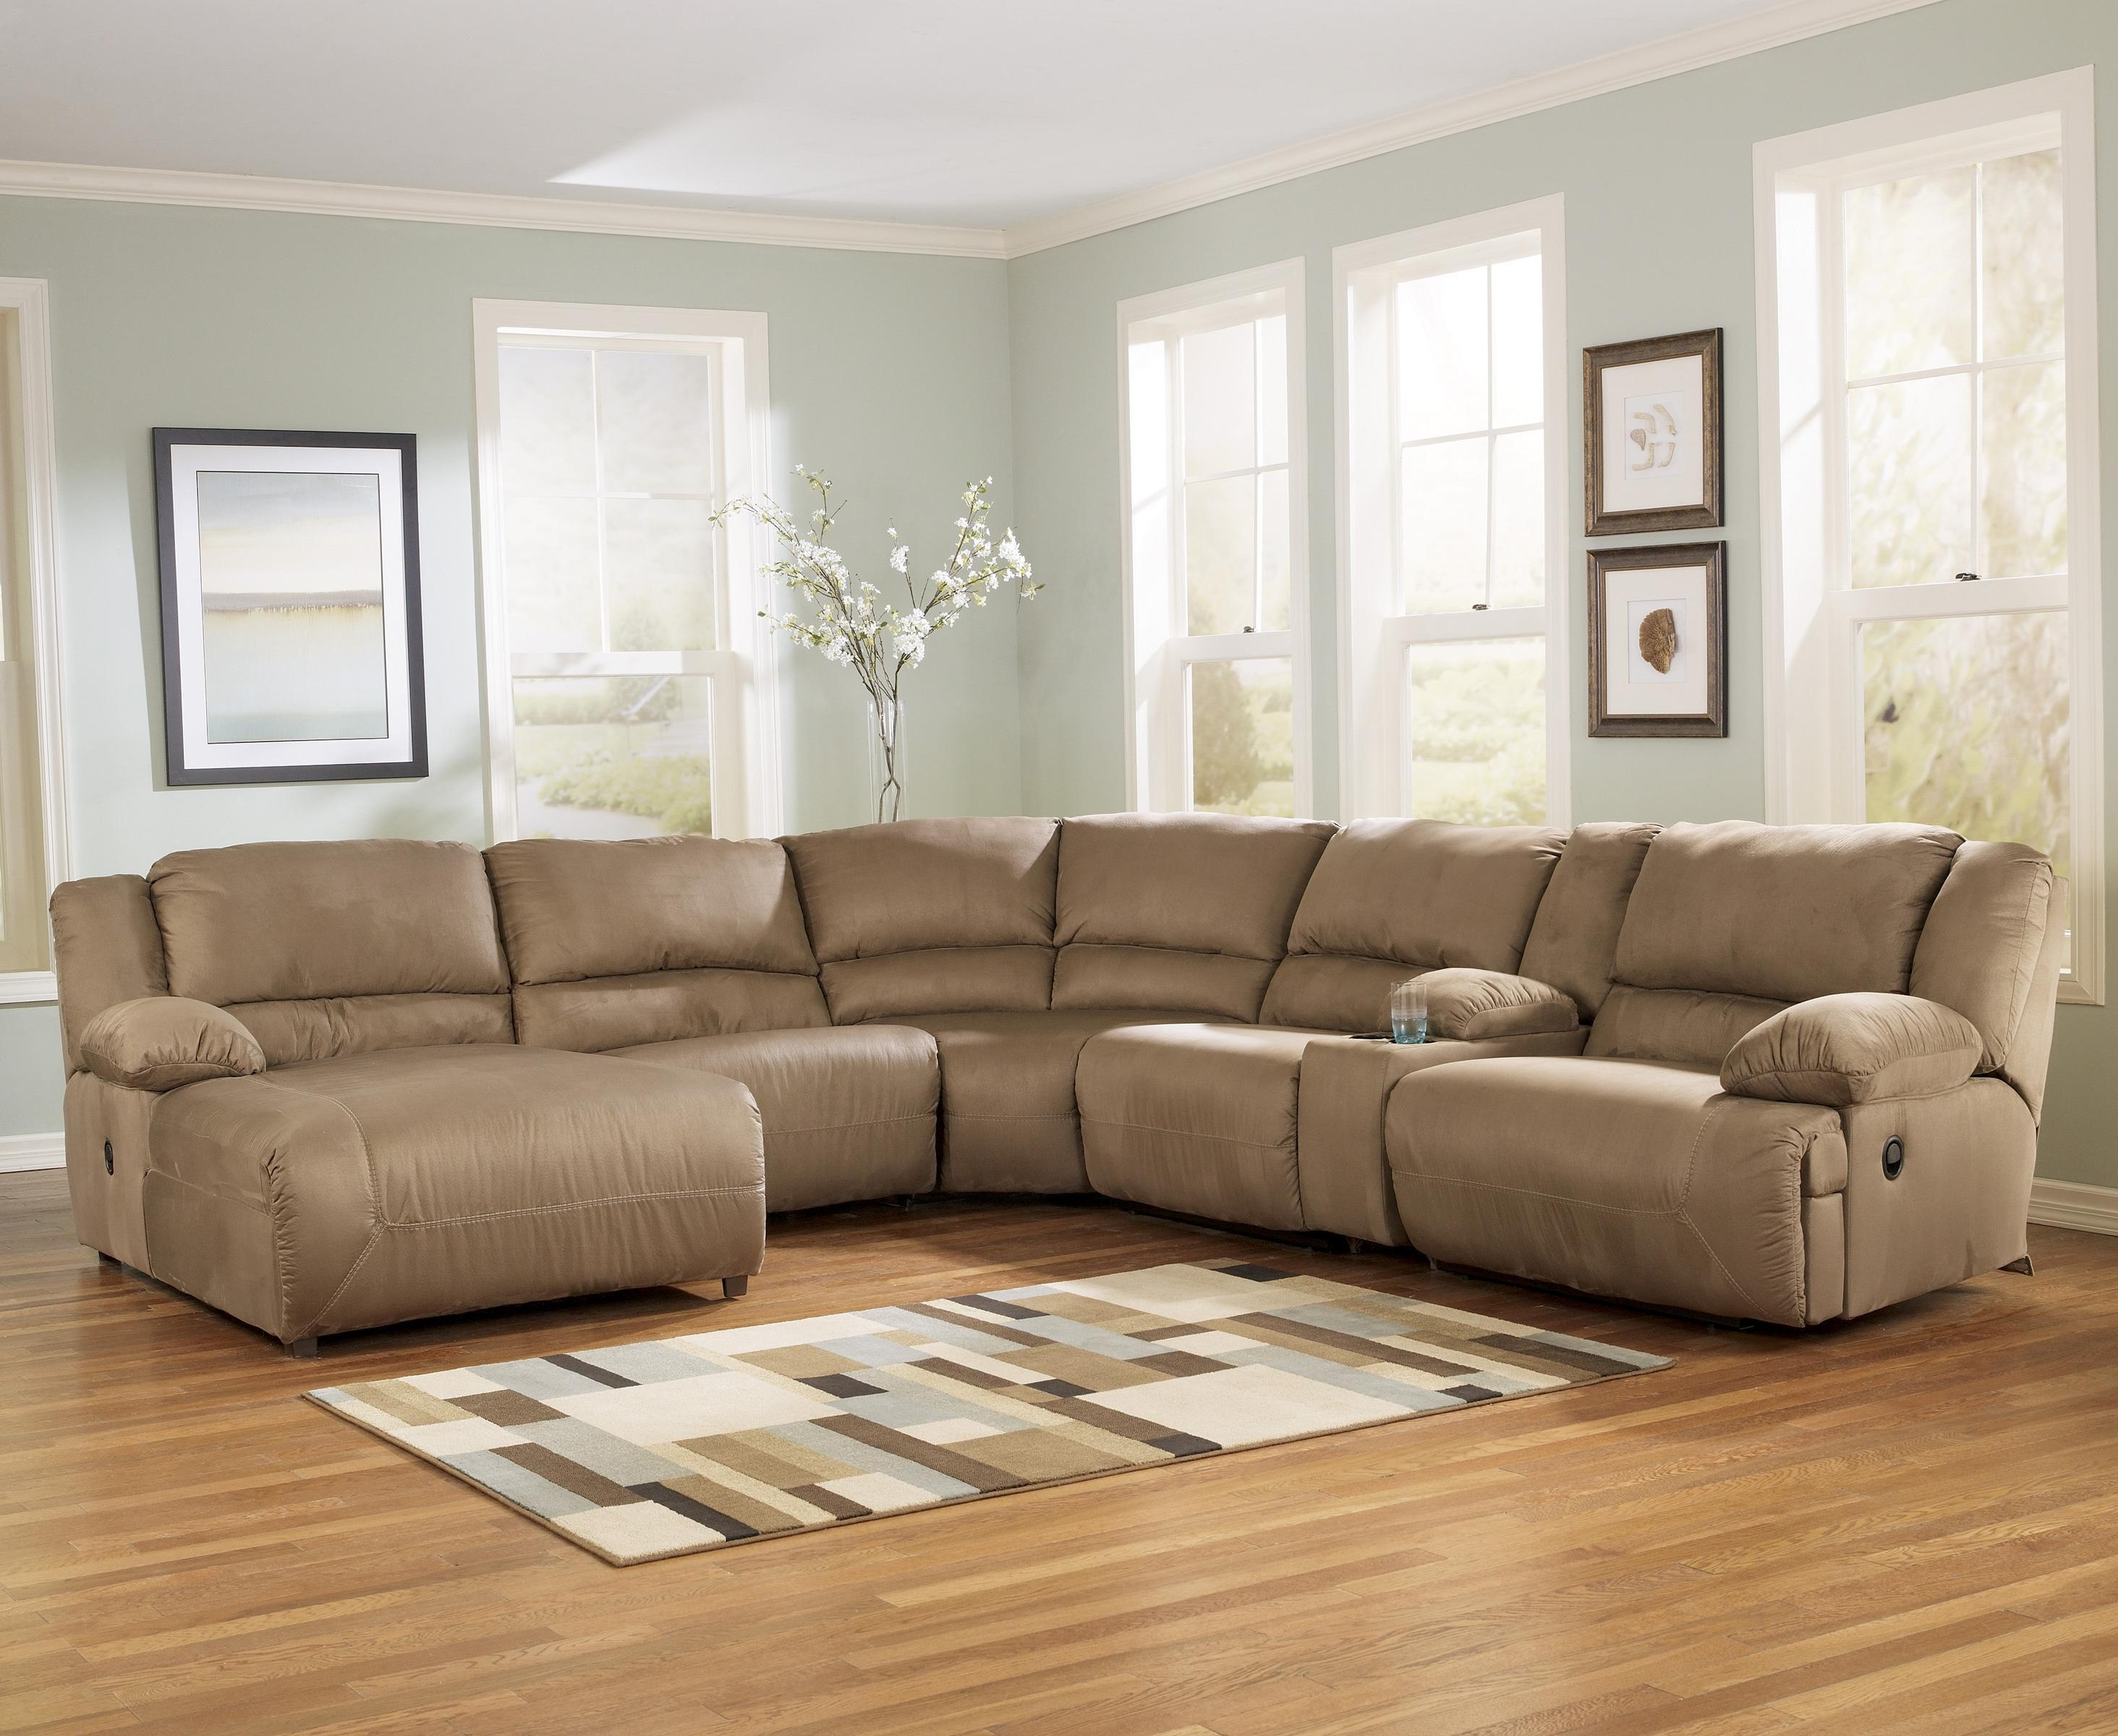 Furniture: Plenty Of Room For The Whole Family With Furniture Stores within Jonesboro Ar Sectional Sofas (Image 6 of 10)